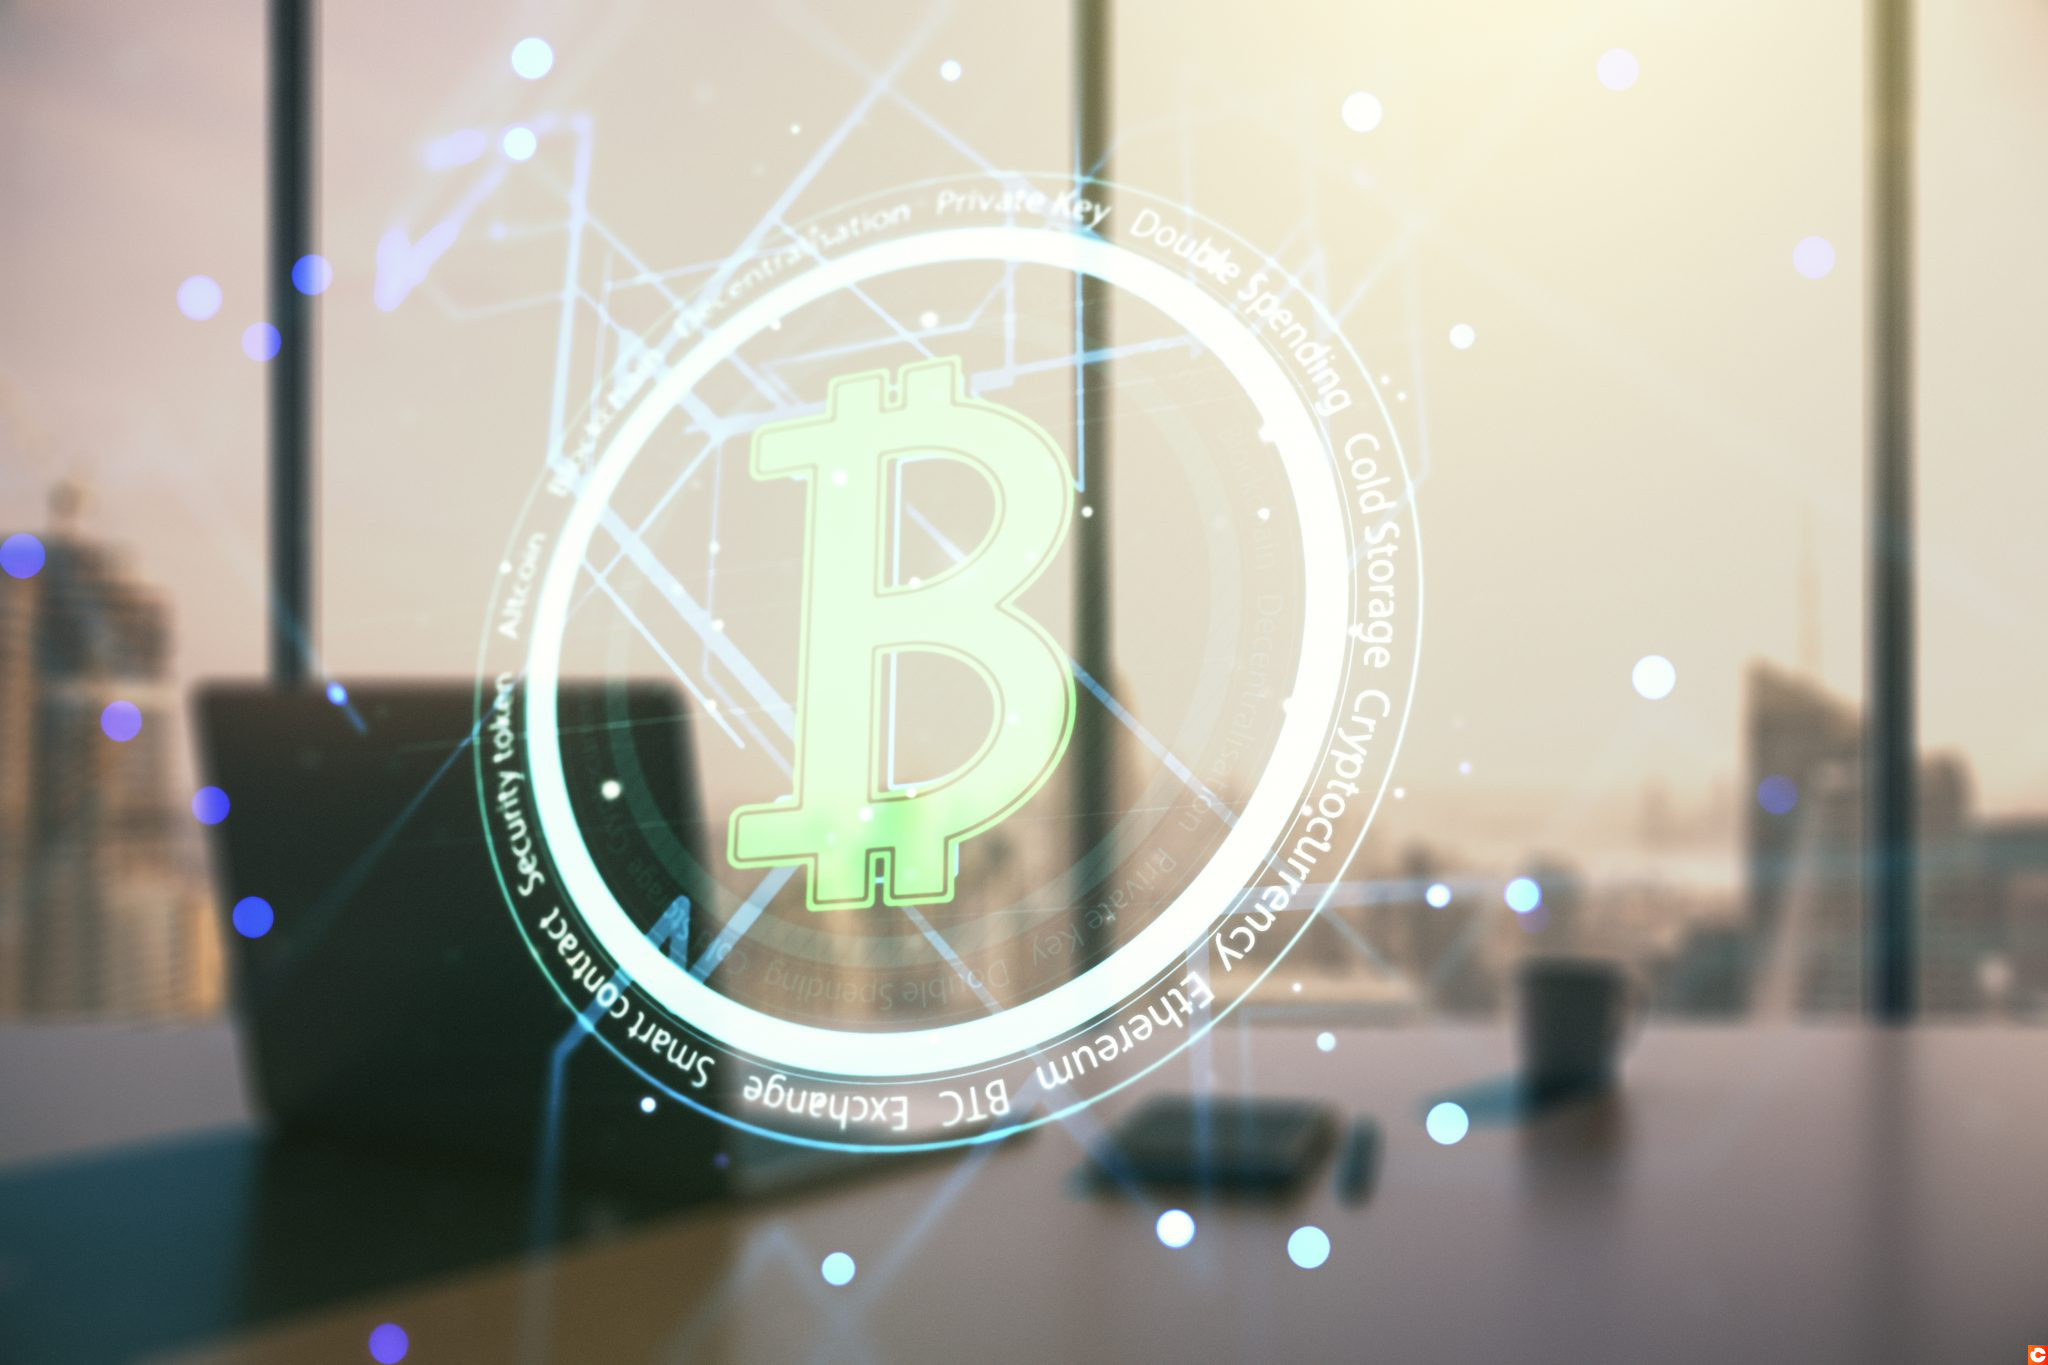 Double exposure of creative Bitcoin symbol hologram and modern desk with computer on background. Mining and blockchain concept